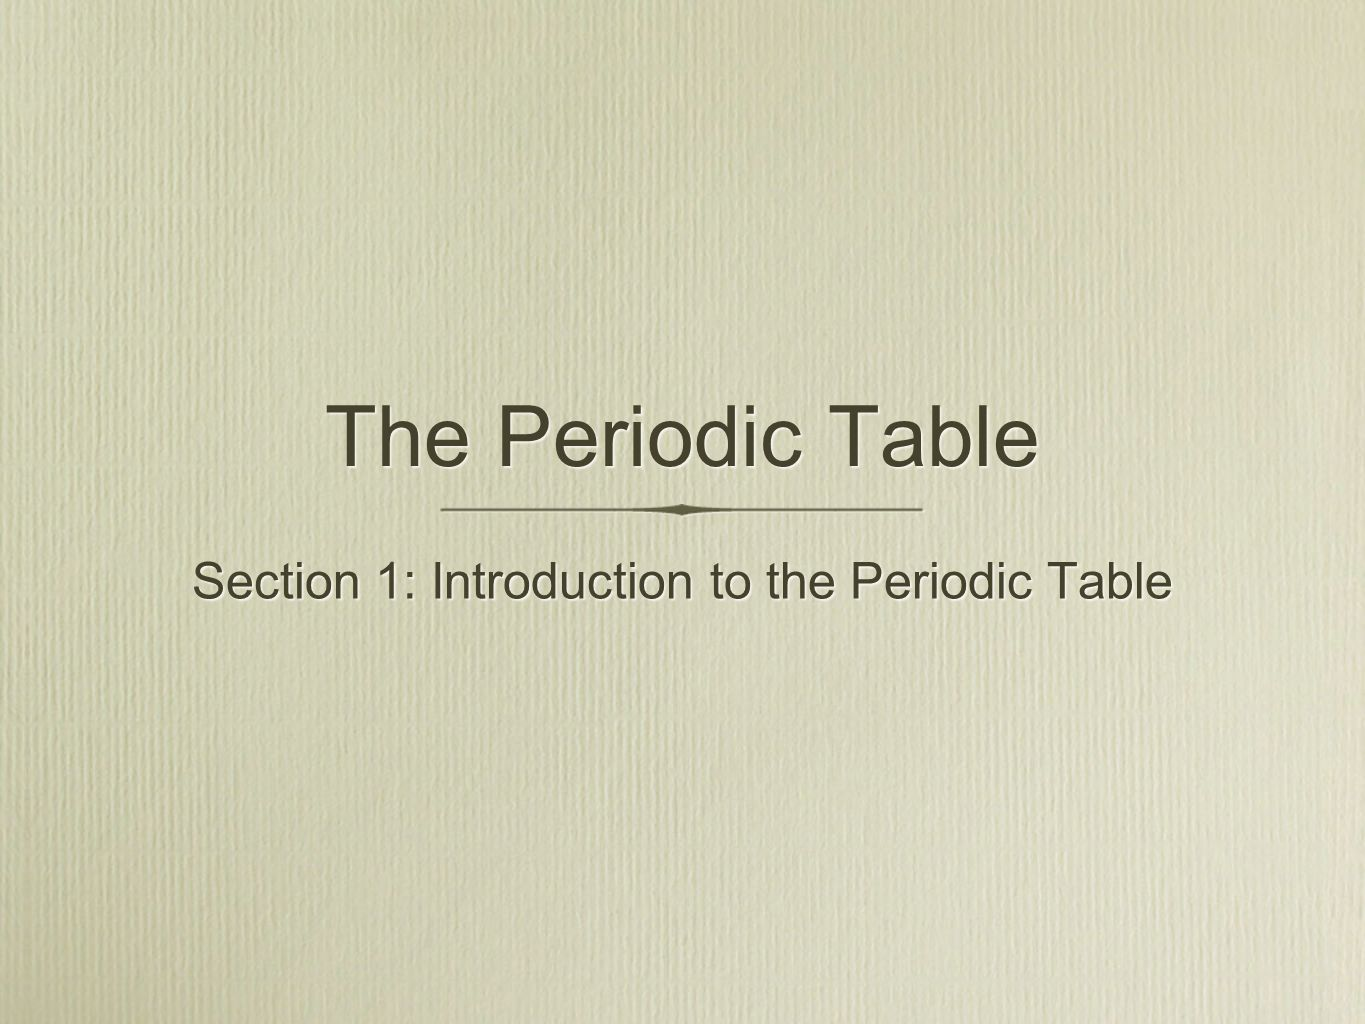 Section 1 introduction to the periodic table ppt video online 1 section 1 introduction to the periodic table gamestrikefo Image collections